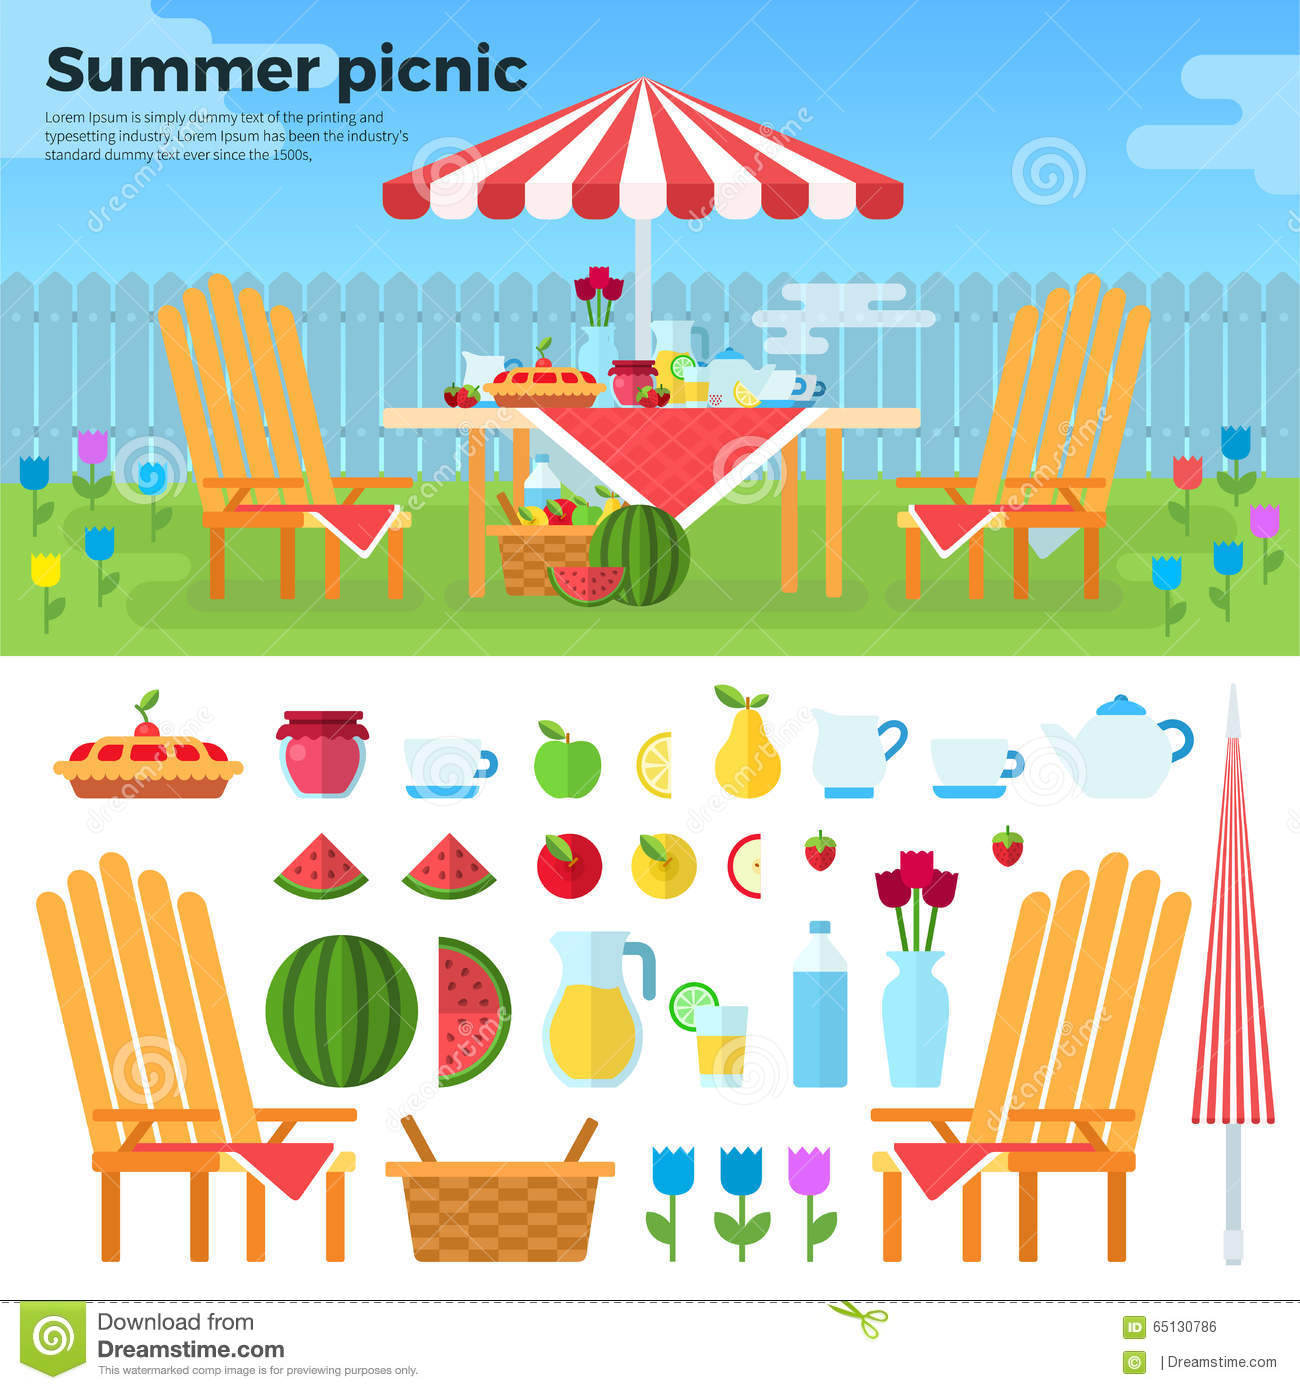 Summer Picnic and Icons of Foods